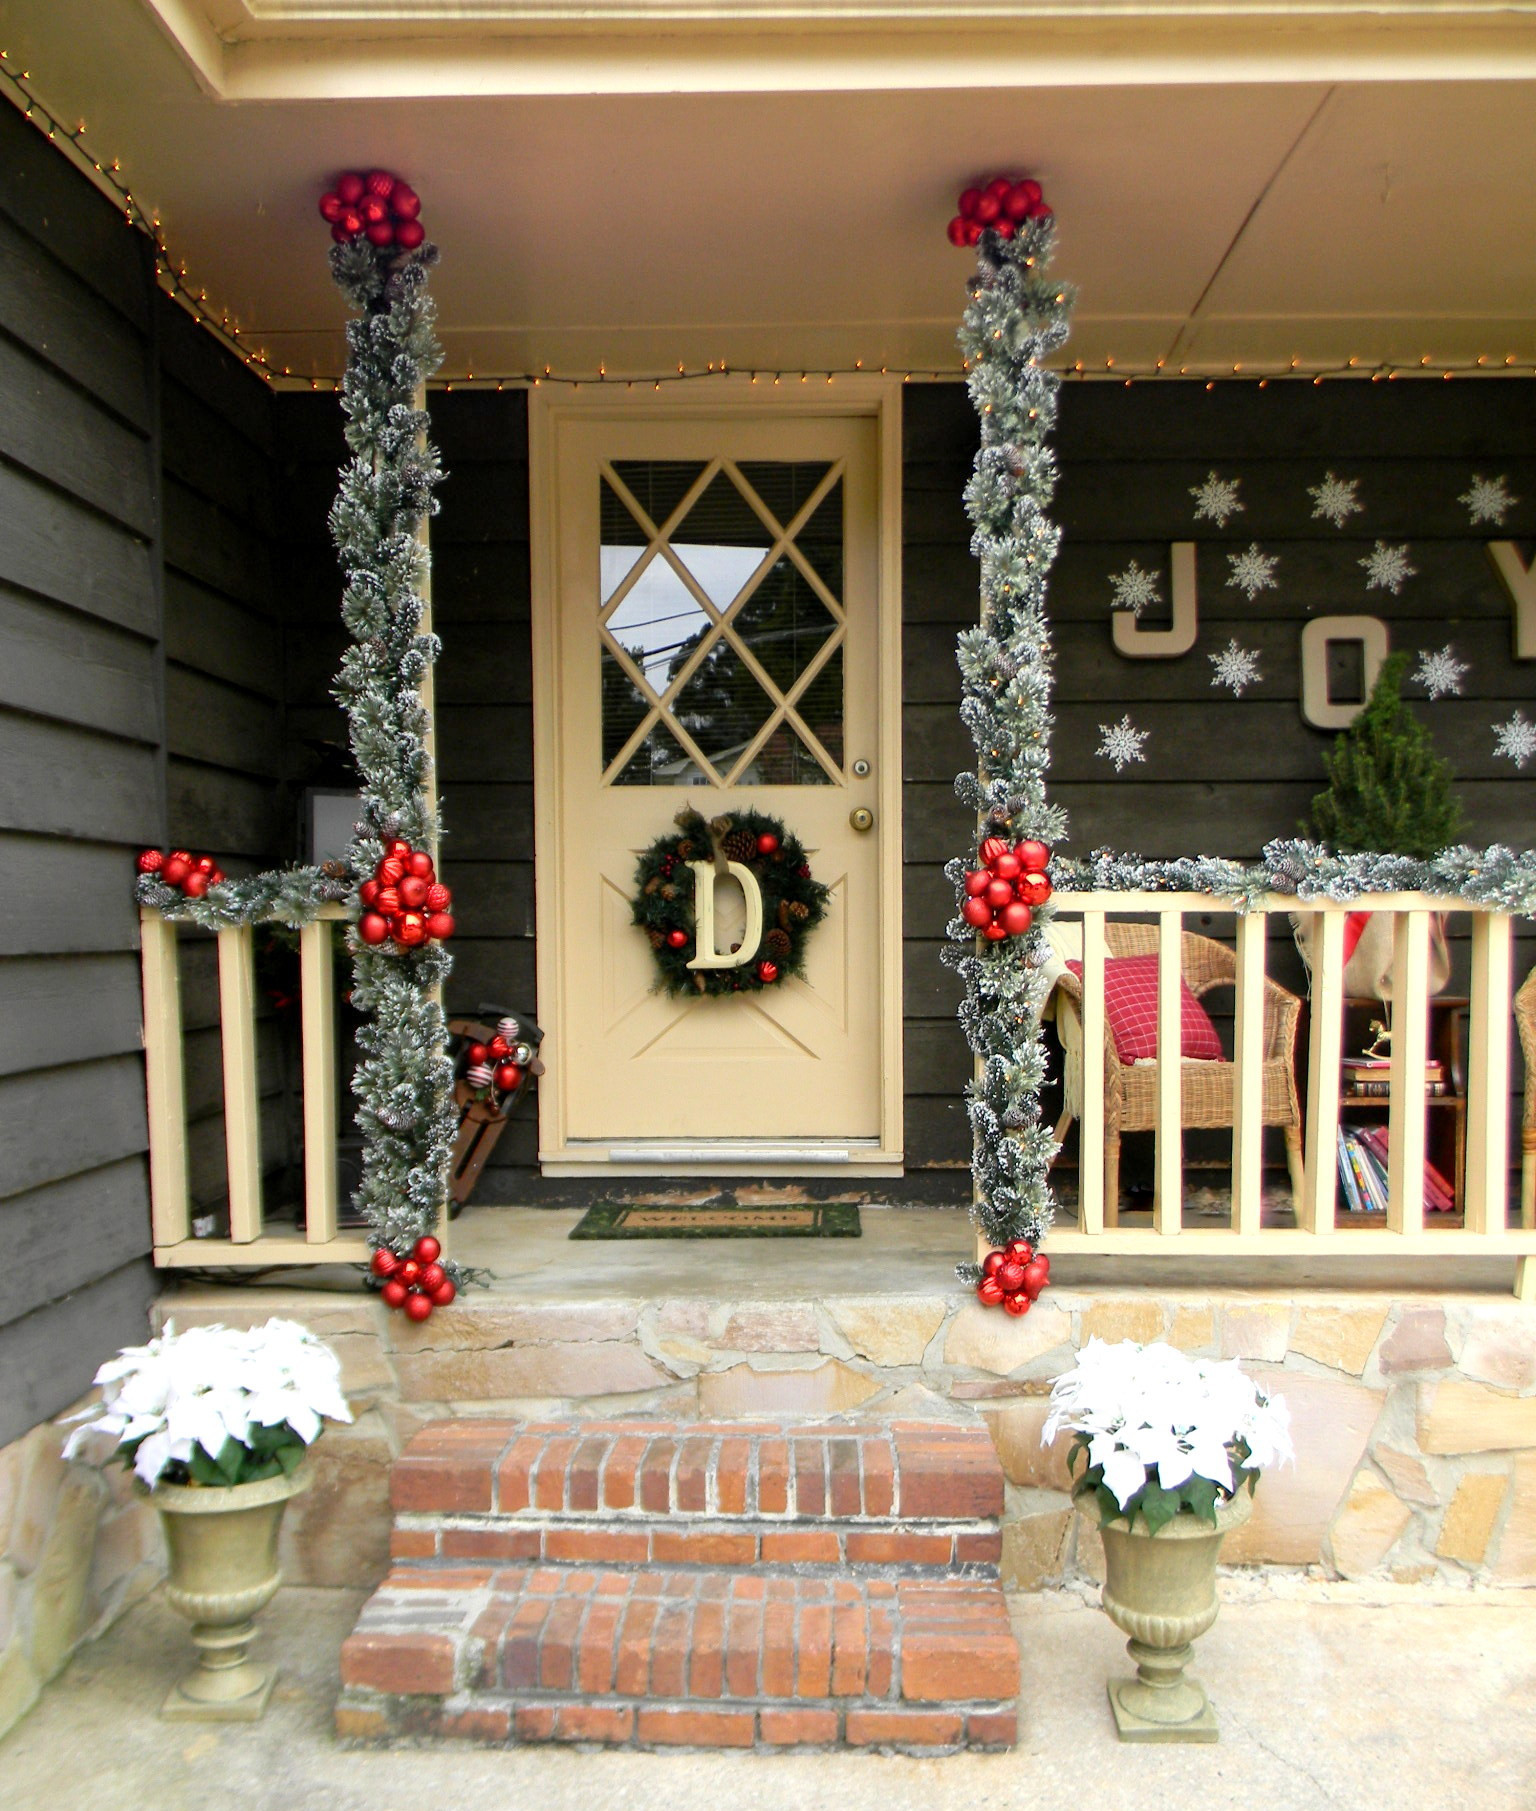 Decorating Porch For Christmas  Front Porch Christmas Decorating Ideas Country Christmas